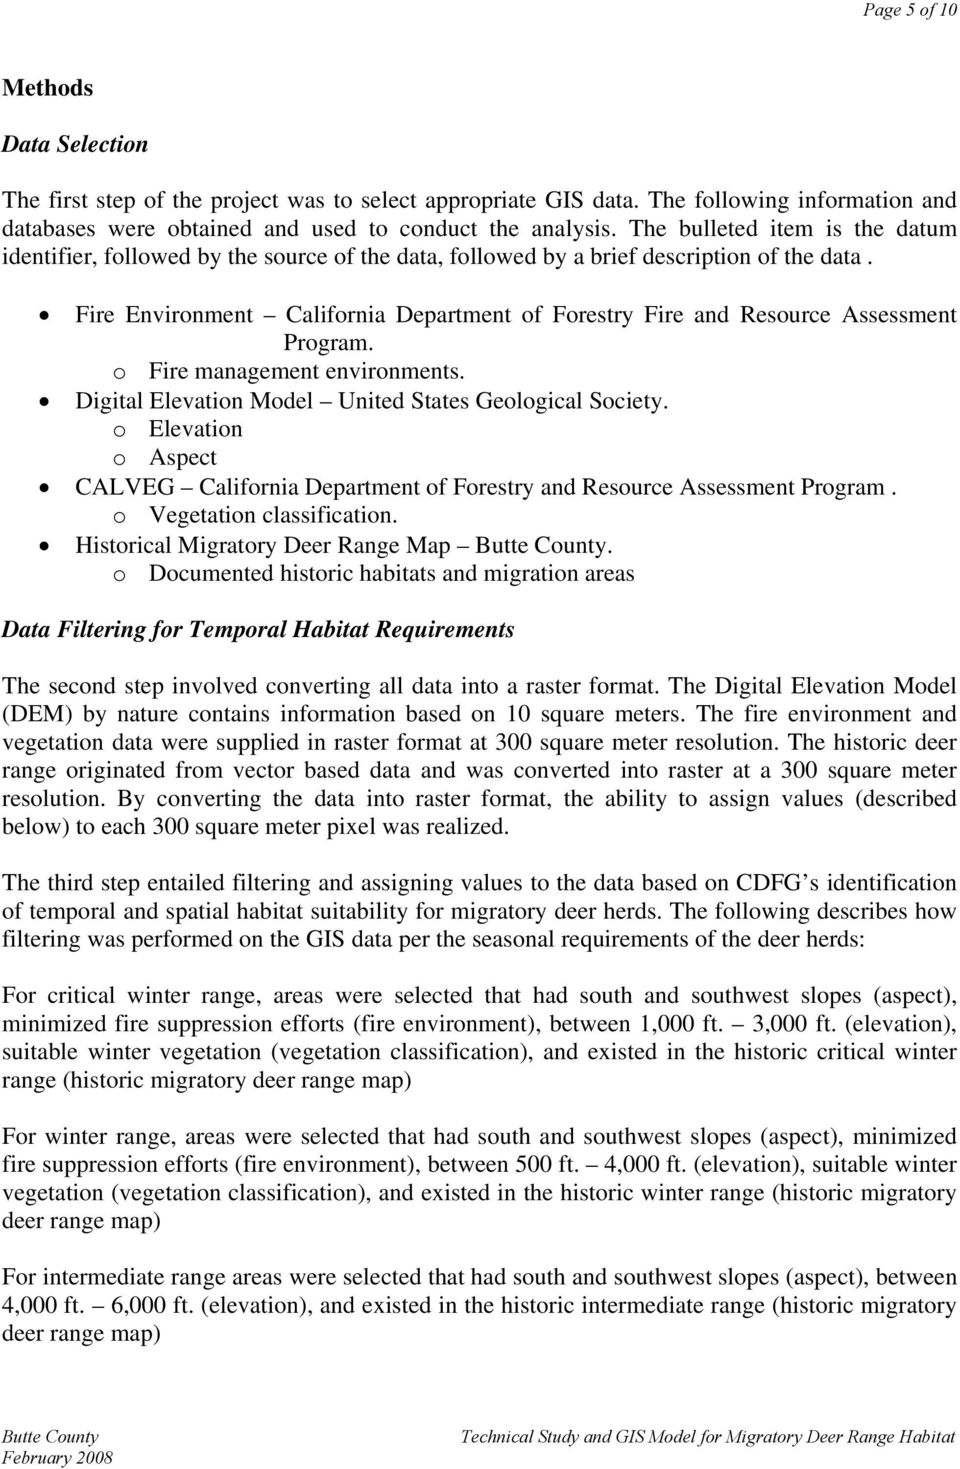 Fire Environment California Department of Forestry Fire and Resource Assessment Program. o Fire management environments. Digital Elevation Model United States Geological Society.